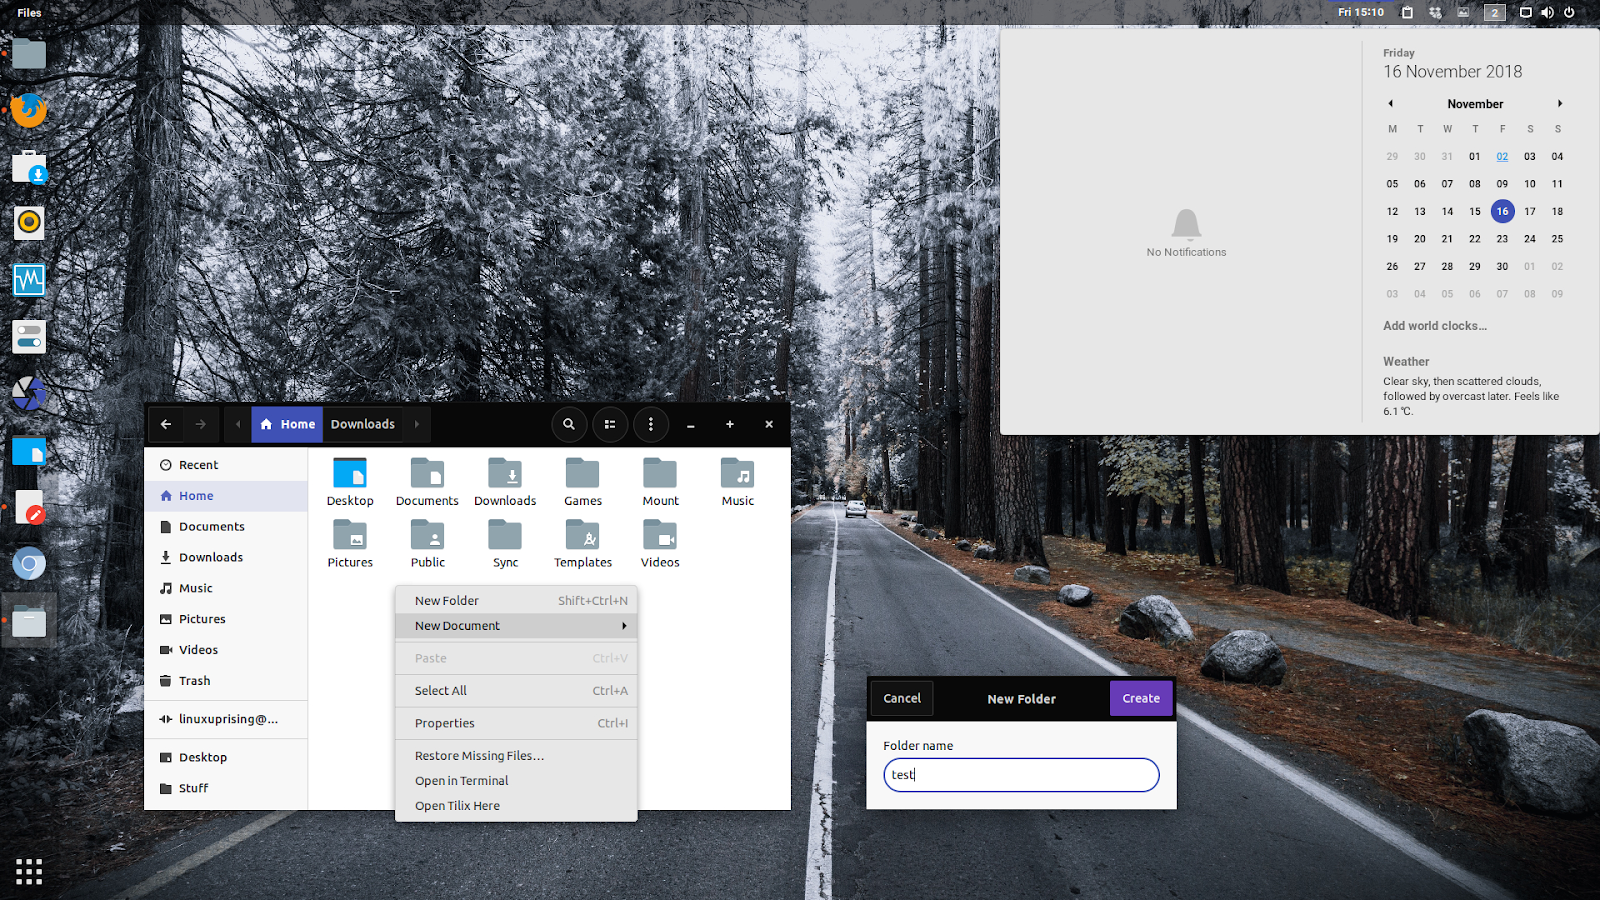 Plata Is A New Gtk Theme Based On The Latest Material Design